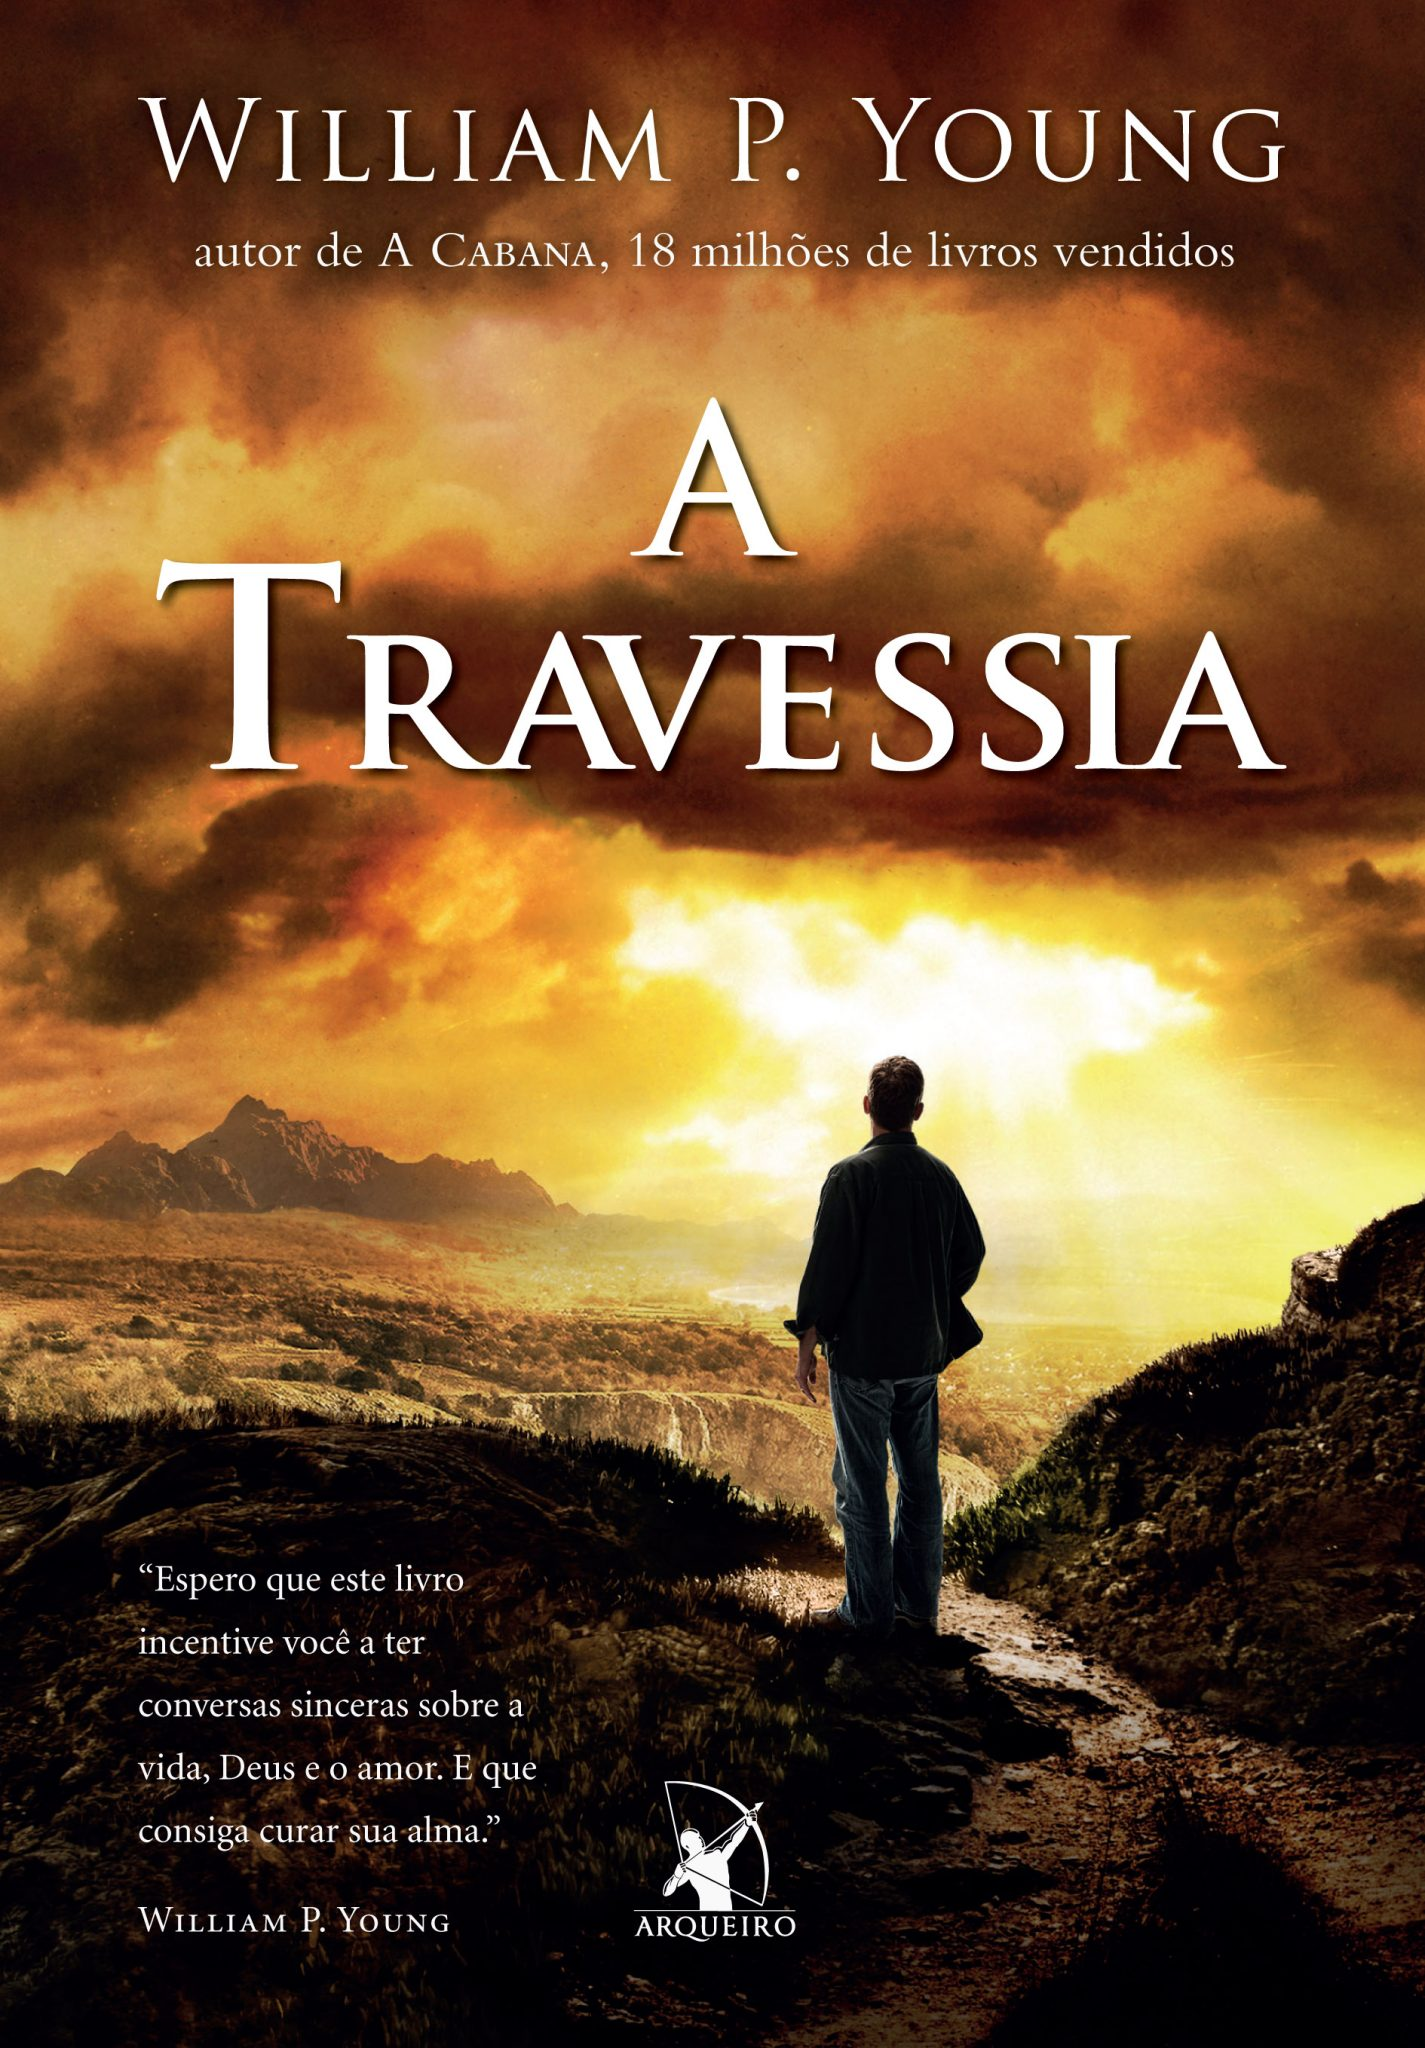 A Travessia de William P. Young